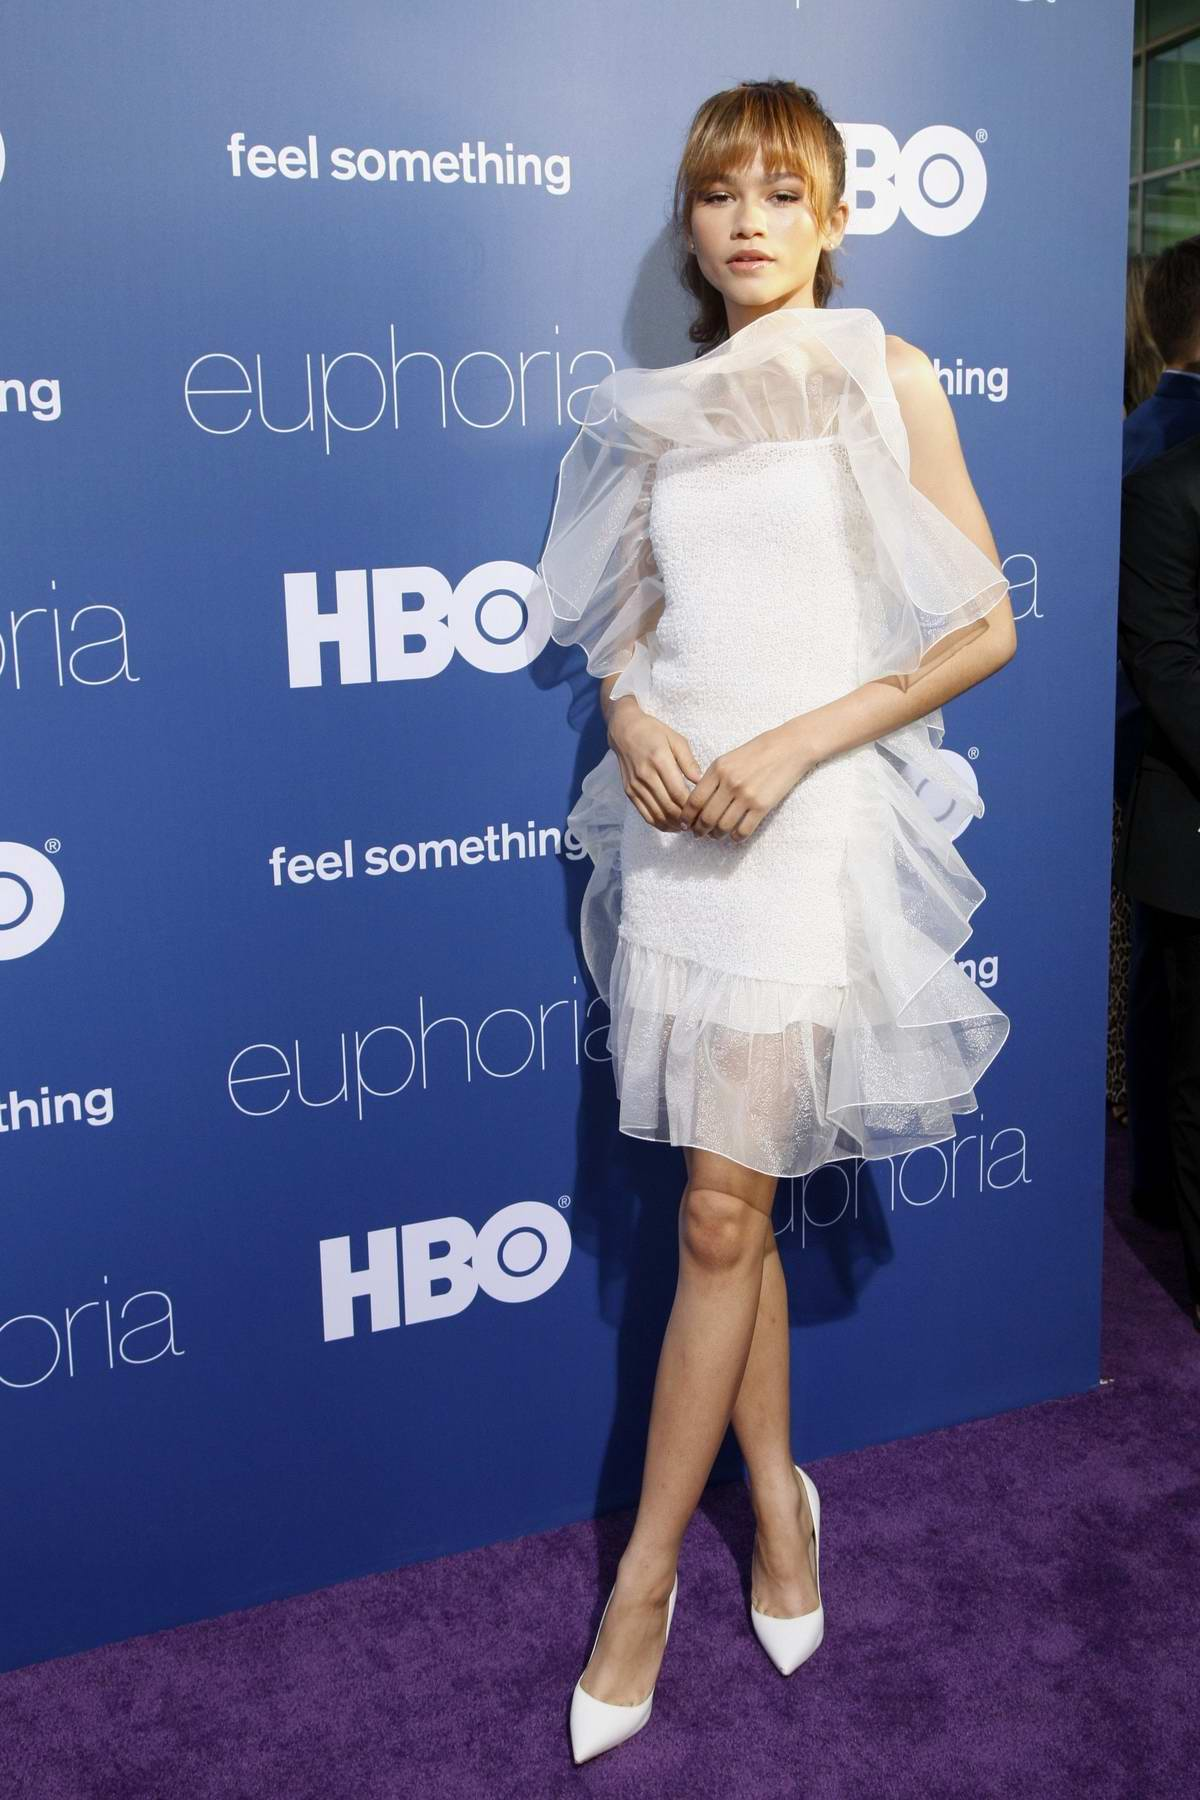 Zendaya attends the premiere Of HBO's 'Euphoria' at The Cinerama Dome in Los Angeles